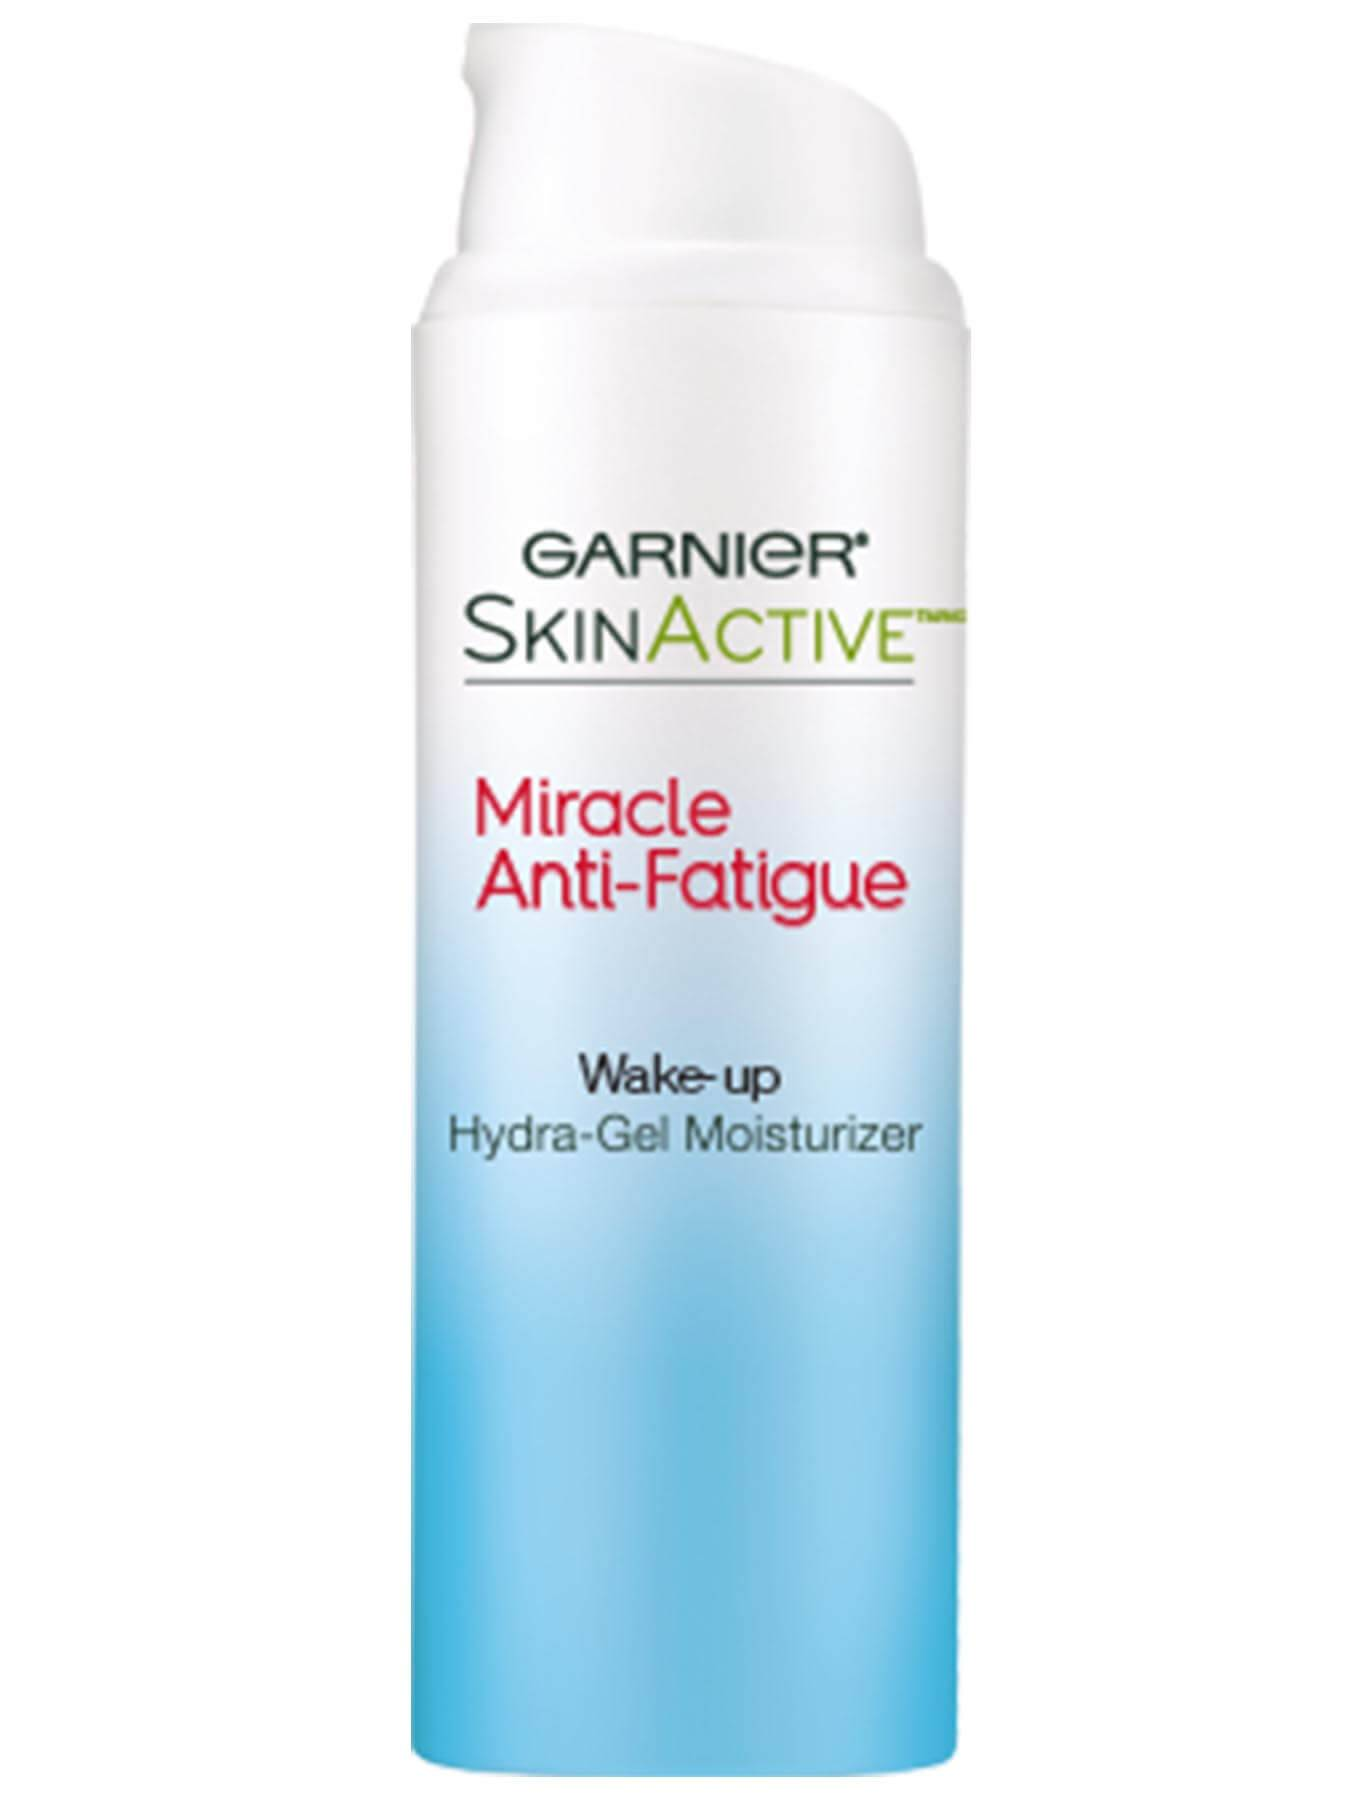 Front view of Miracle Anti-Fatigue Wake-Up Hydra-Gel Moisturizer.